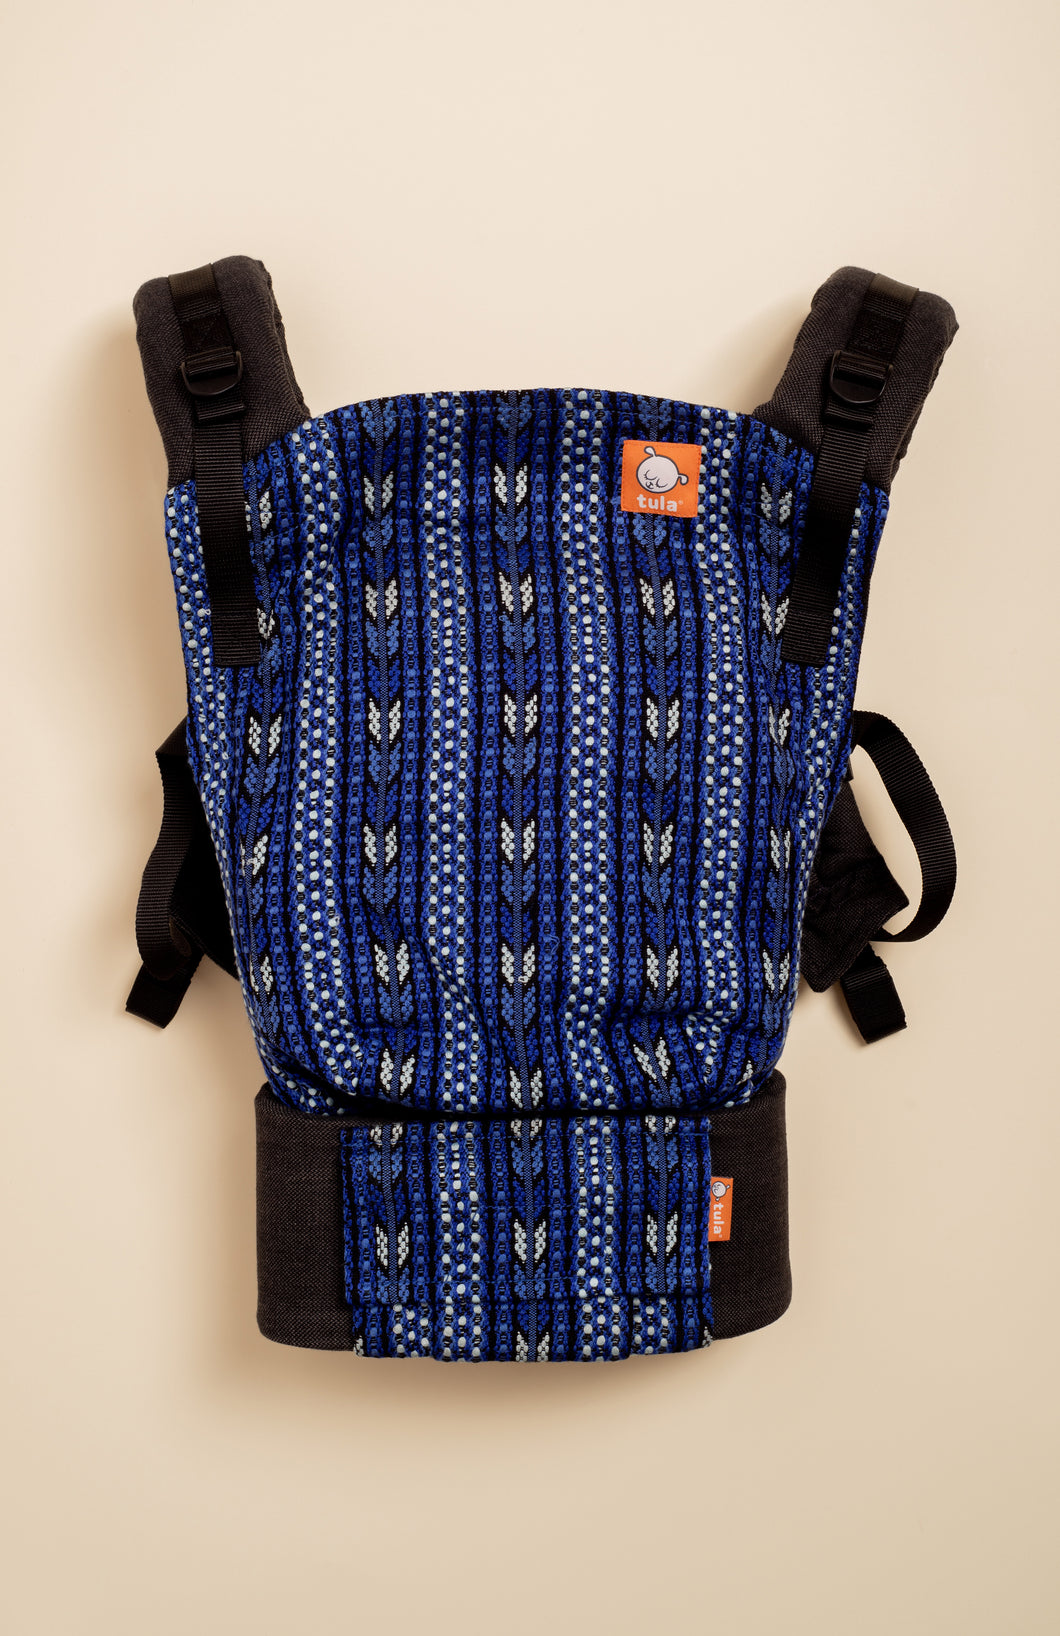 Girasol Artisan Carrier 104 - Tula Signature Baby Carrier